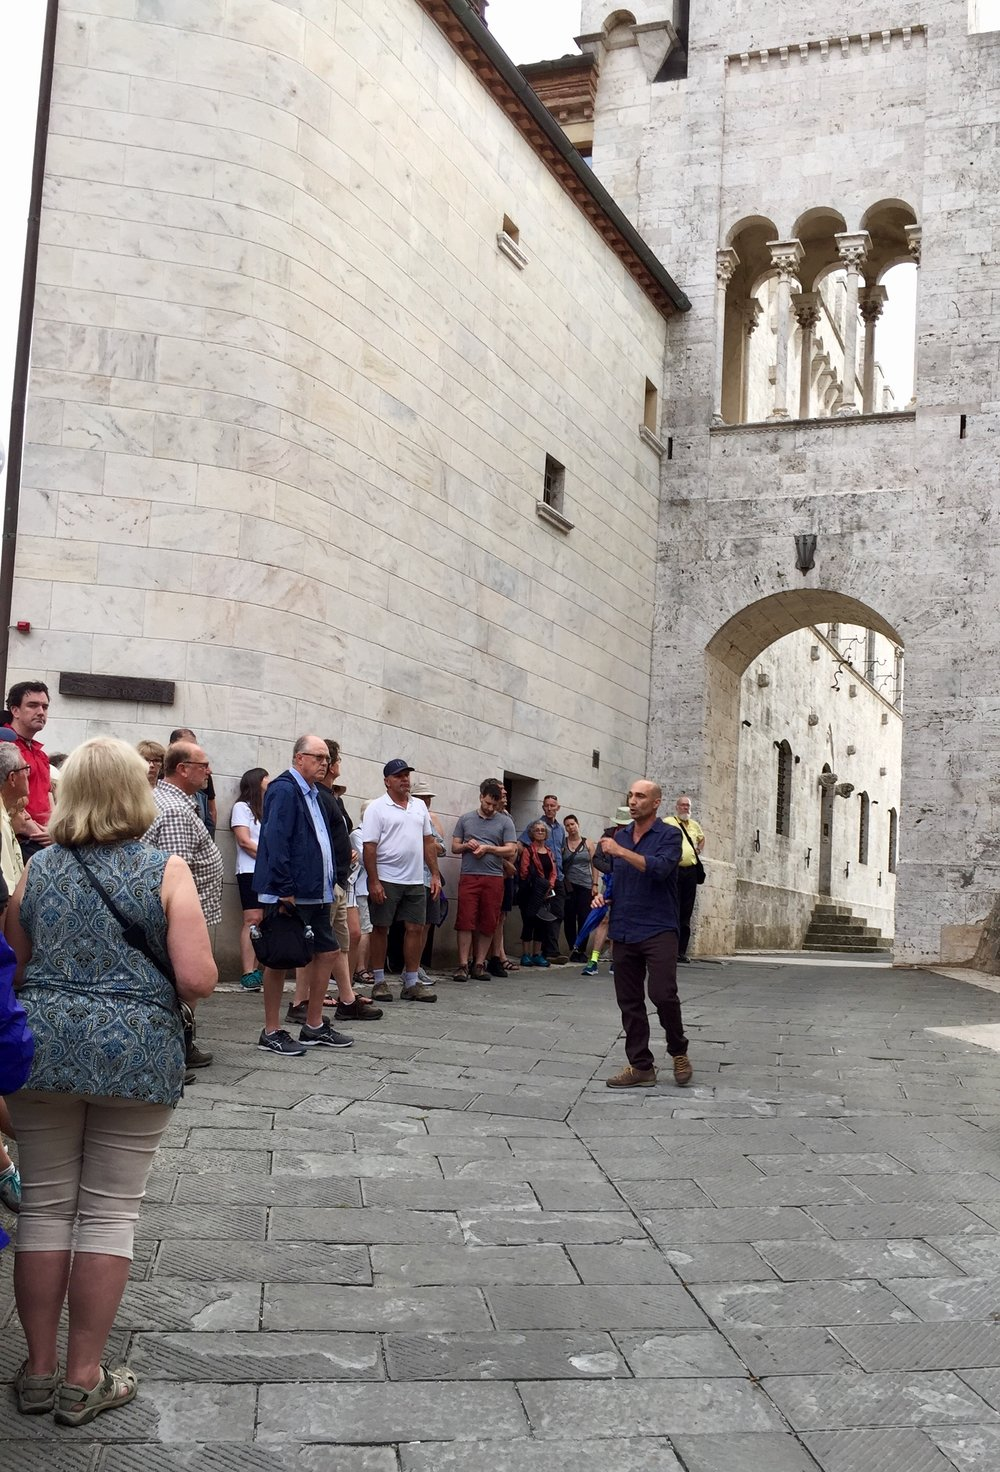 Copy of  Antonio welcoming everyone at the entrance to Castello delle Serre, a 1,500 year old castle that he and his father restored.  We had dinner there after the castle tour.